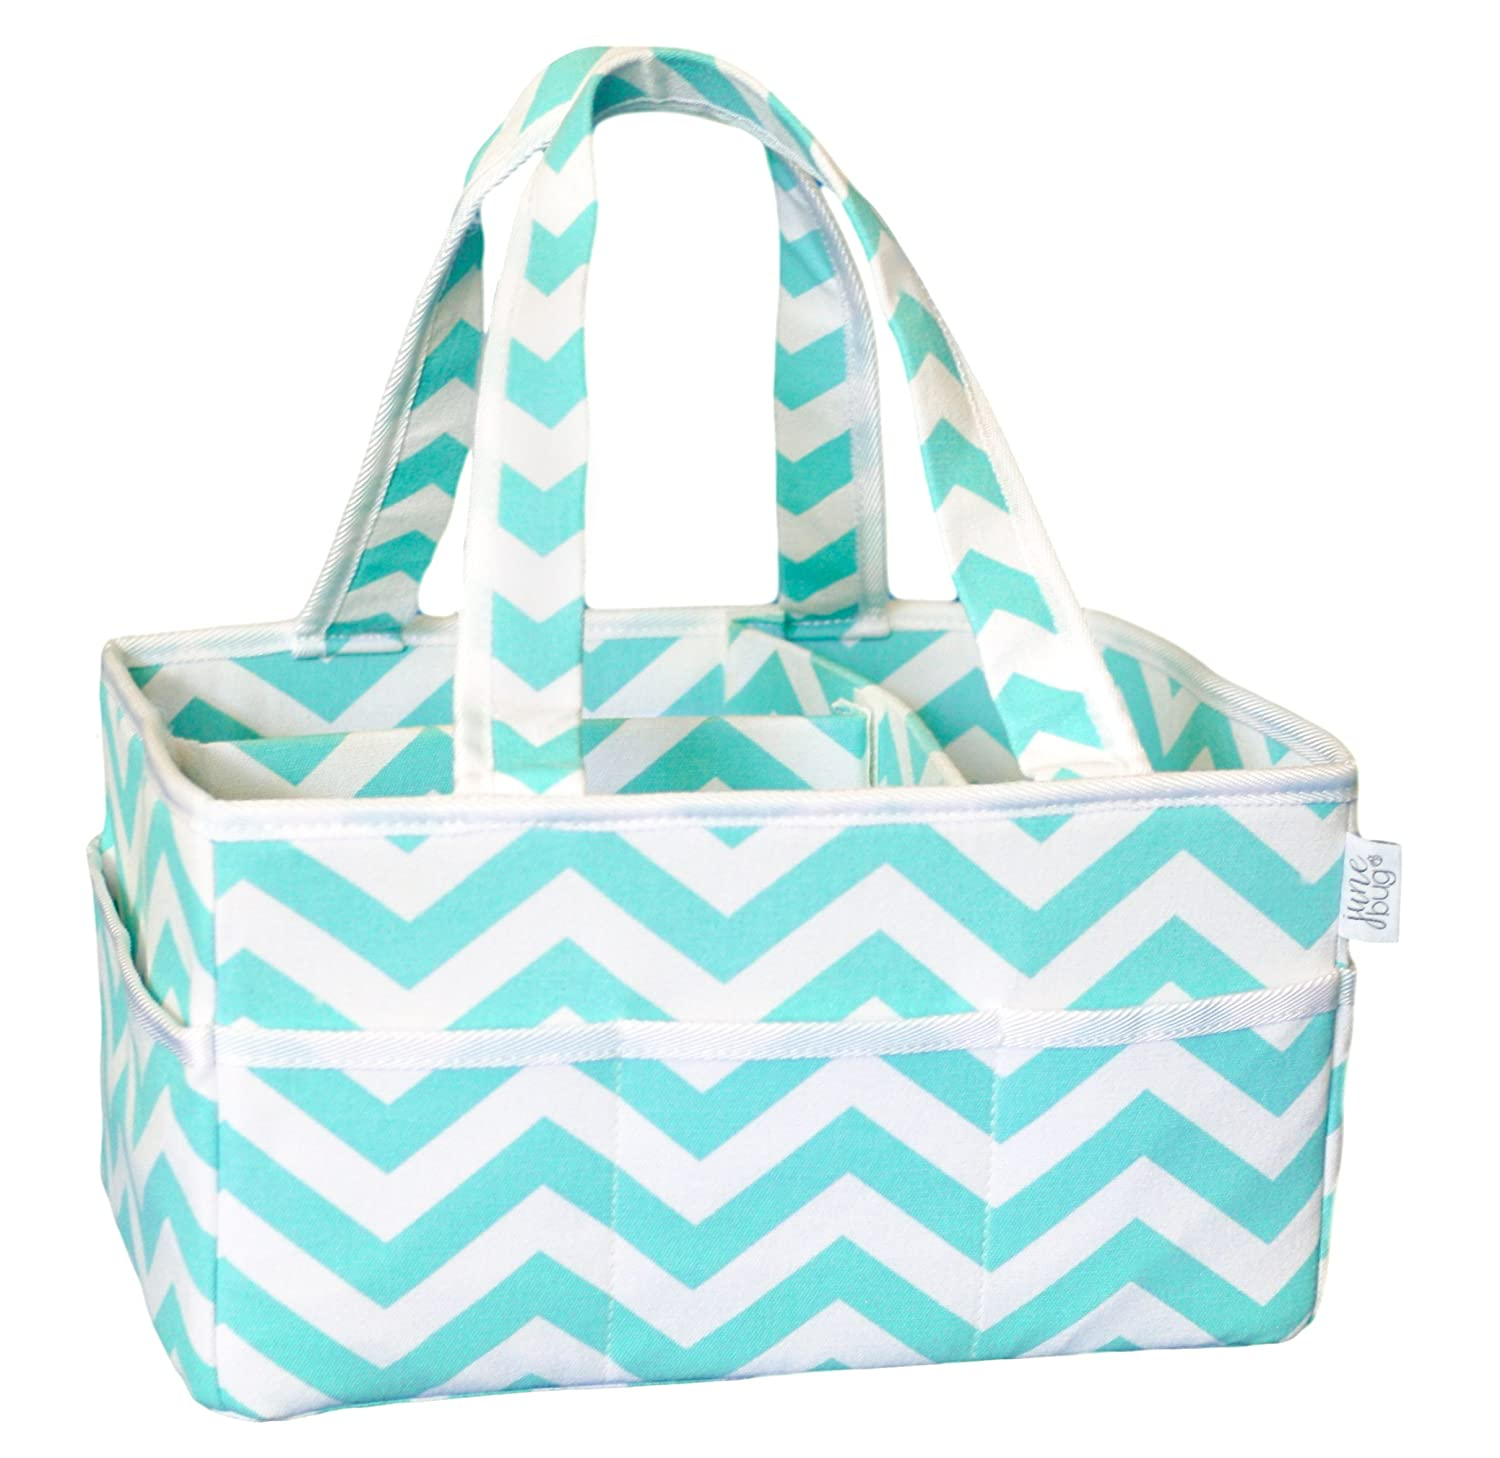 June Bug Portable Diaper Storage Caddy - Home, Car, and Nursery Organizer - Changing Table Diaper Basket and Stacker - Unisex Turquoise Chevron Design